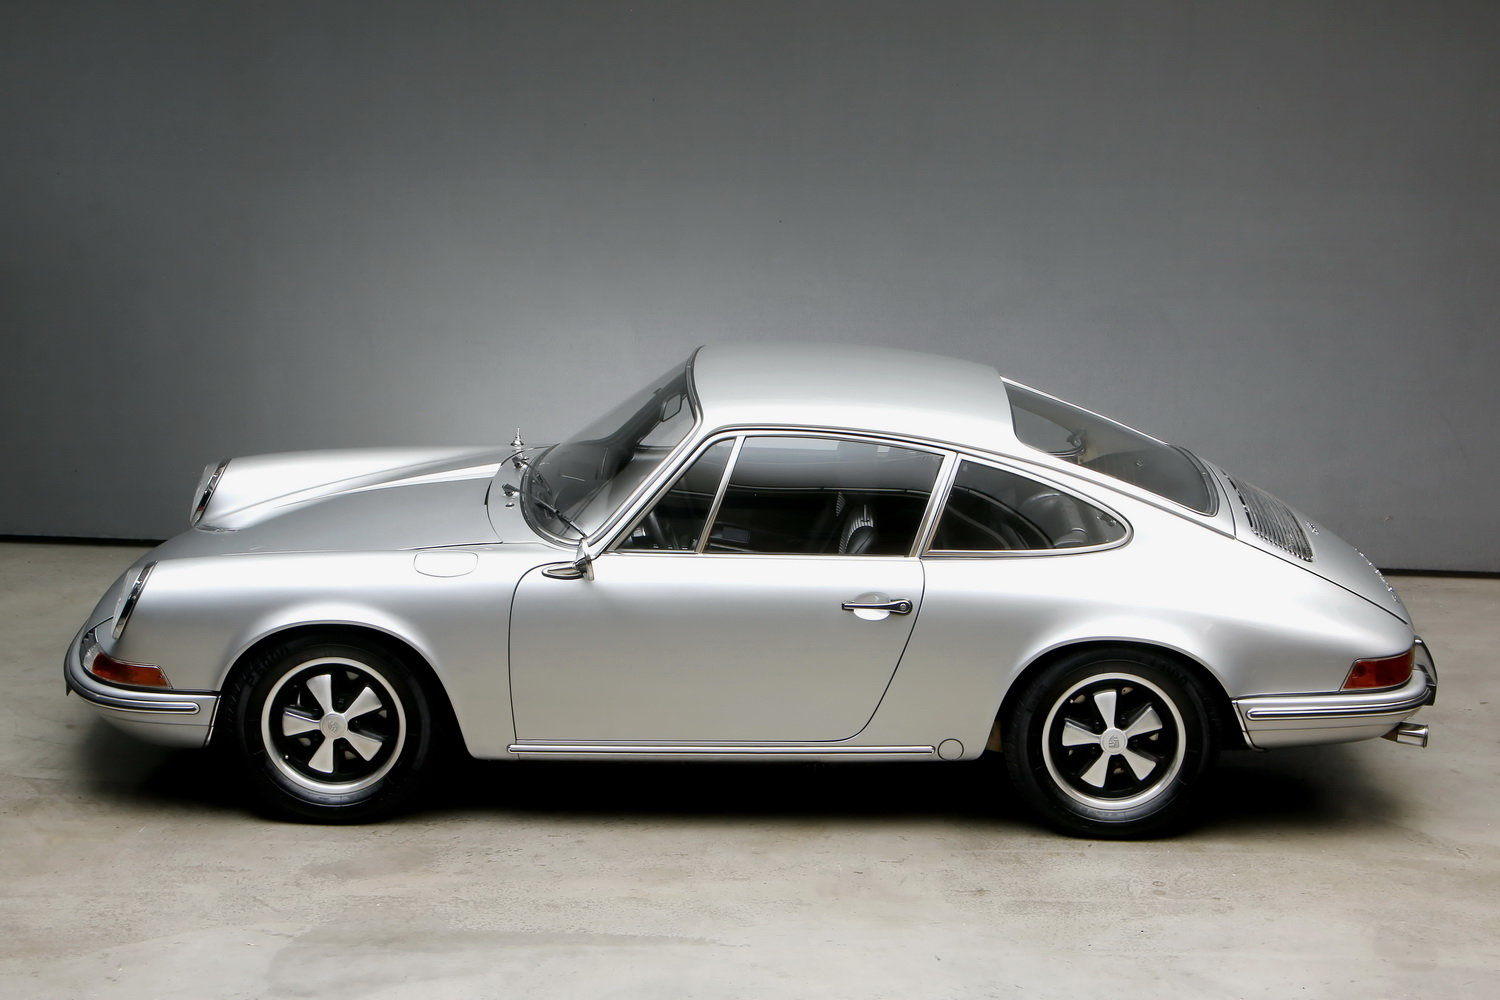 1970 911T 2.2 Ltr. Coup - Individualumbau - For Sale (picture 6 of 12)